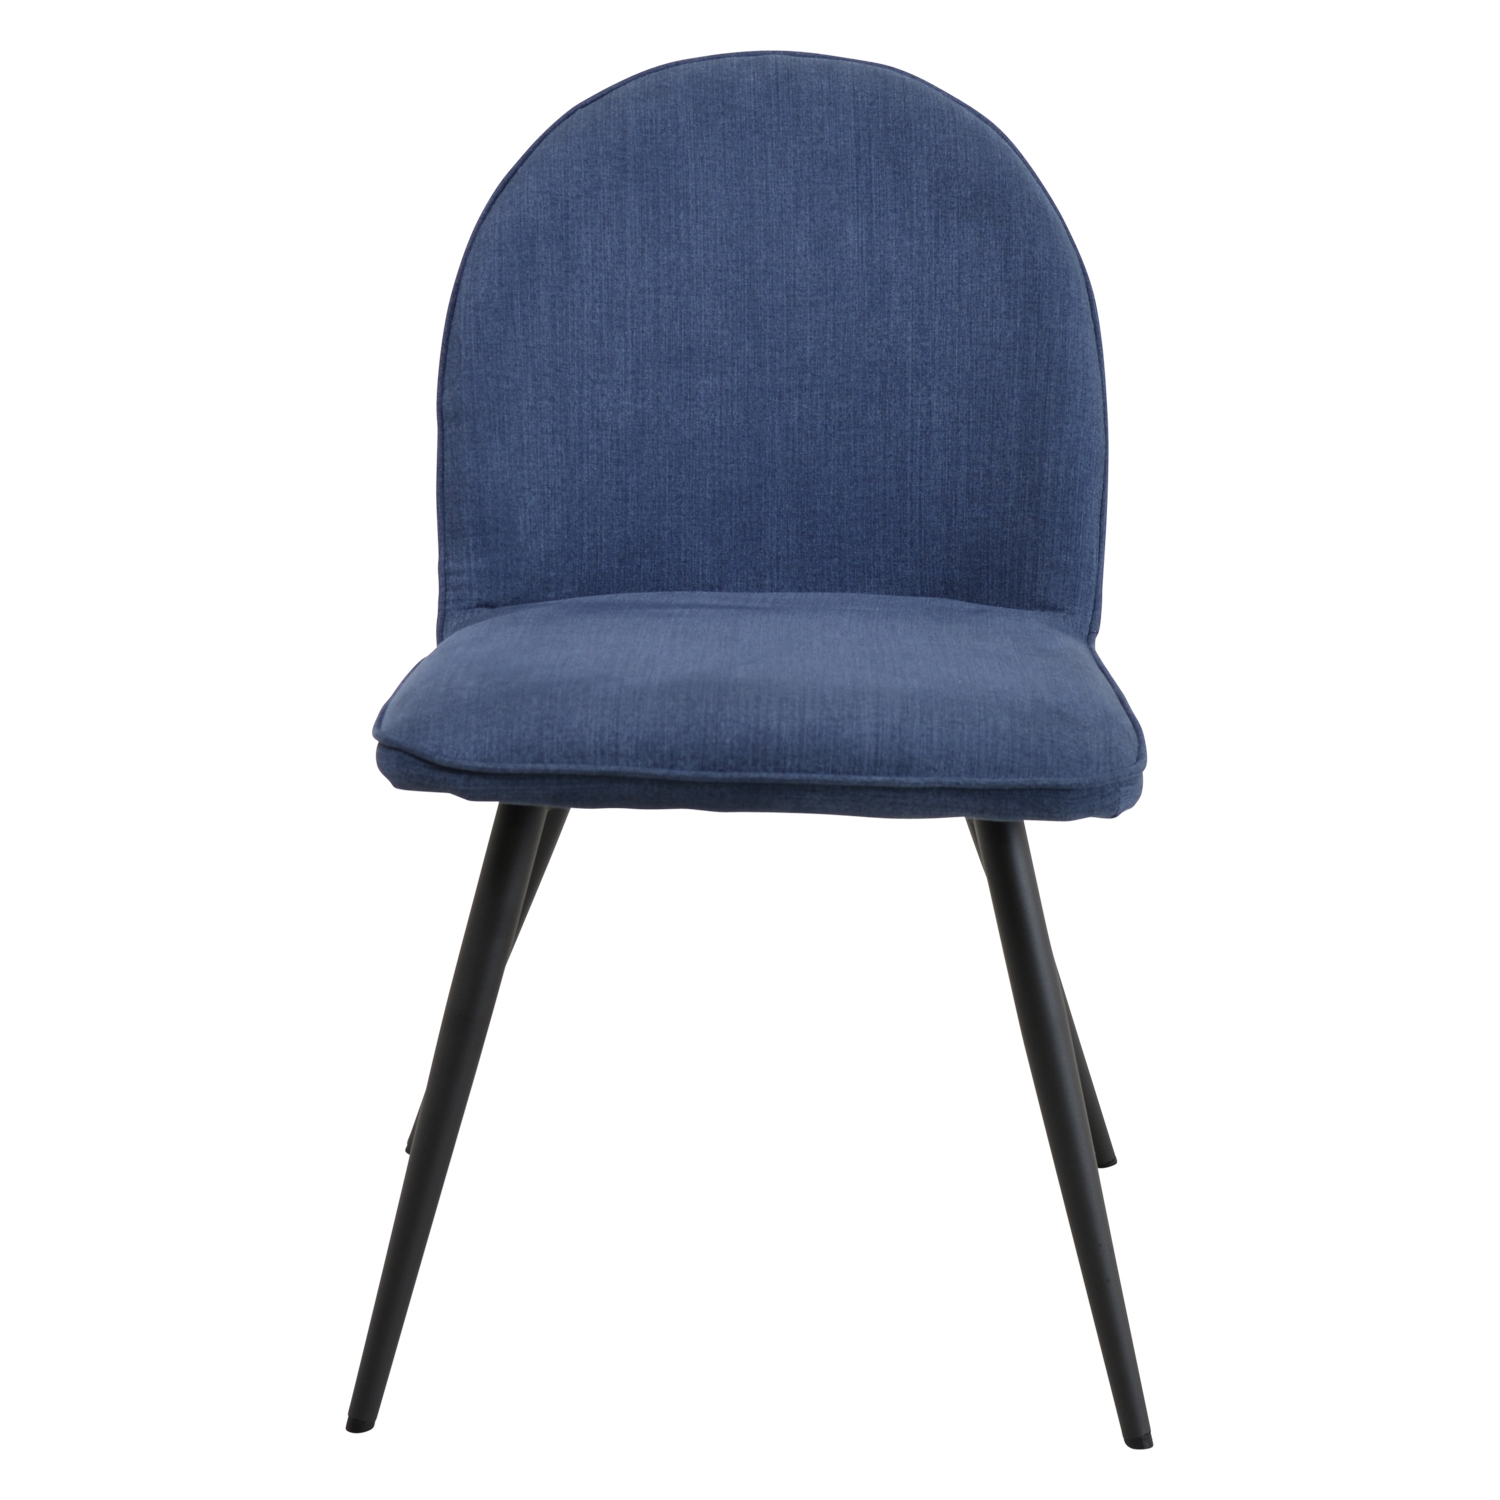 Image of Casa Adelaide Dining Chair, Blue